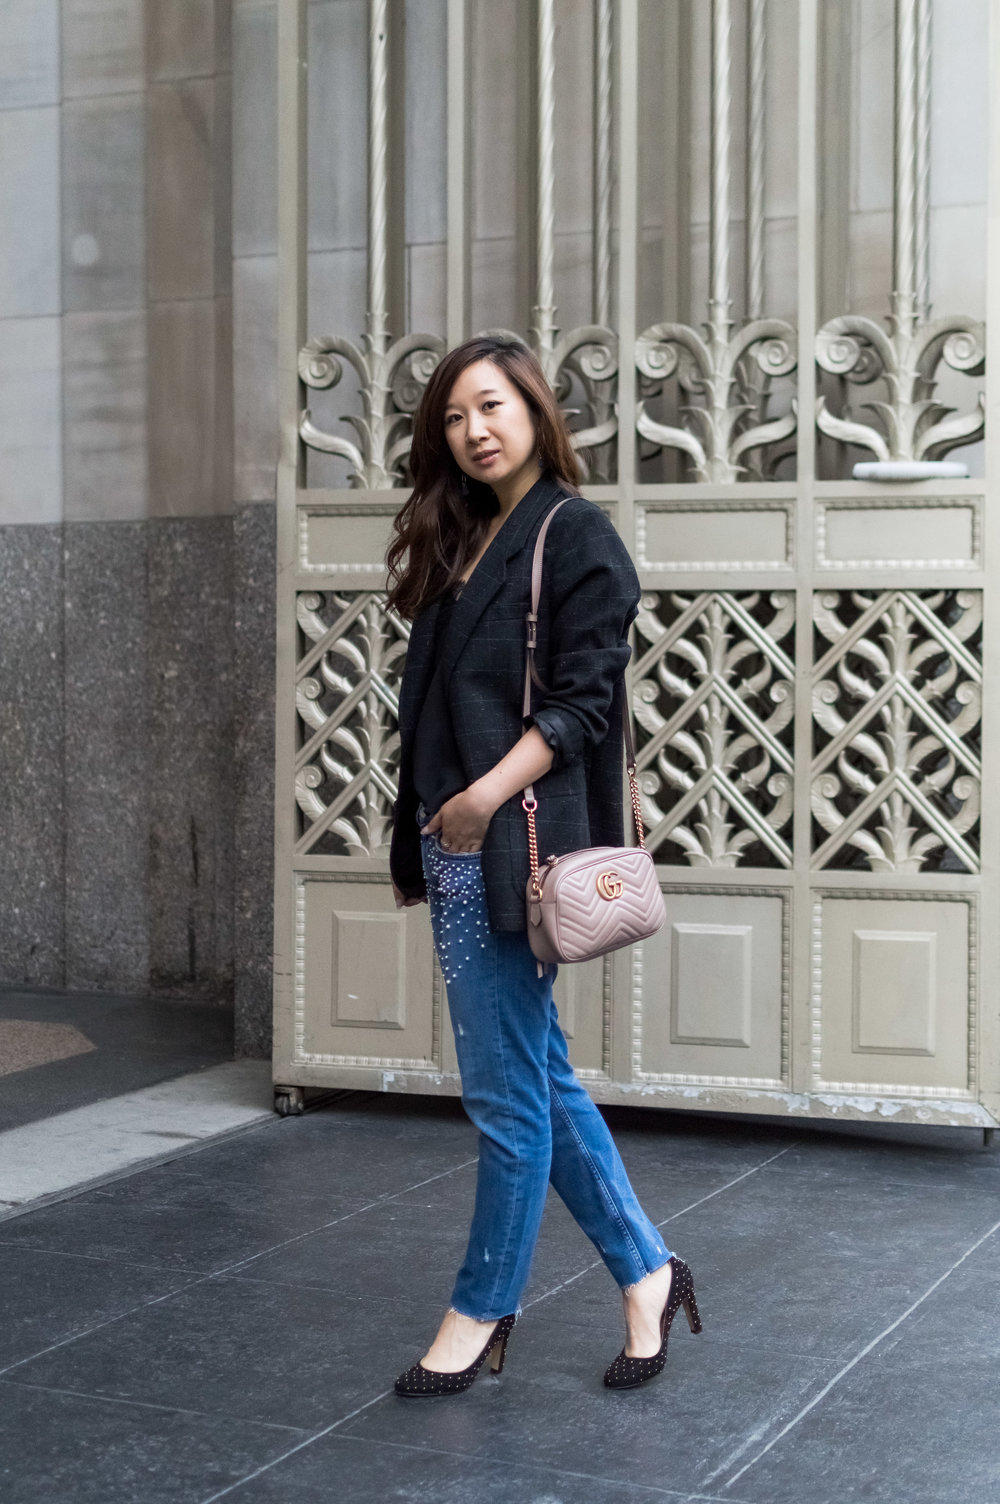 Wearing my grandpa's jacket over pearl jeans. Photo by Tiffany Chen.